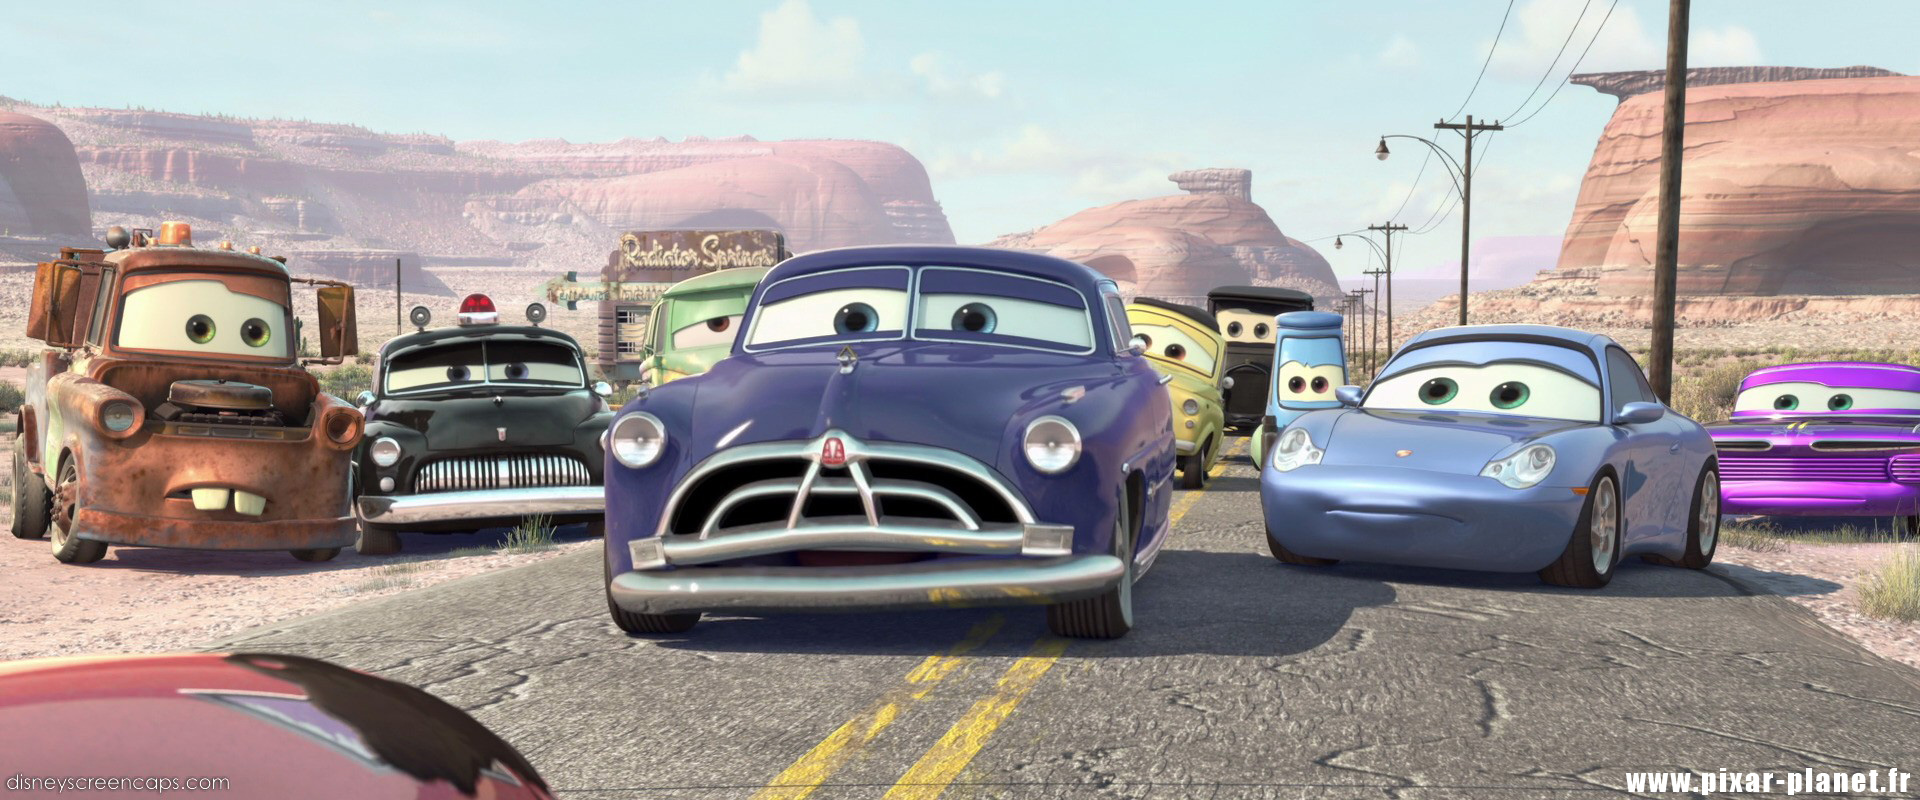 quotes from cars pixar planet fr. Black Bedroom Furniture Sets. Home Design Ideas